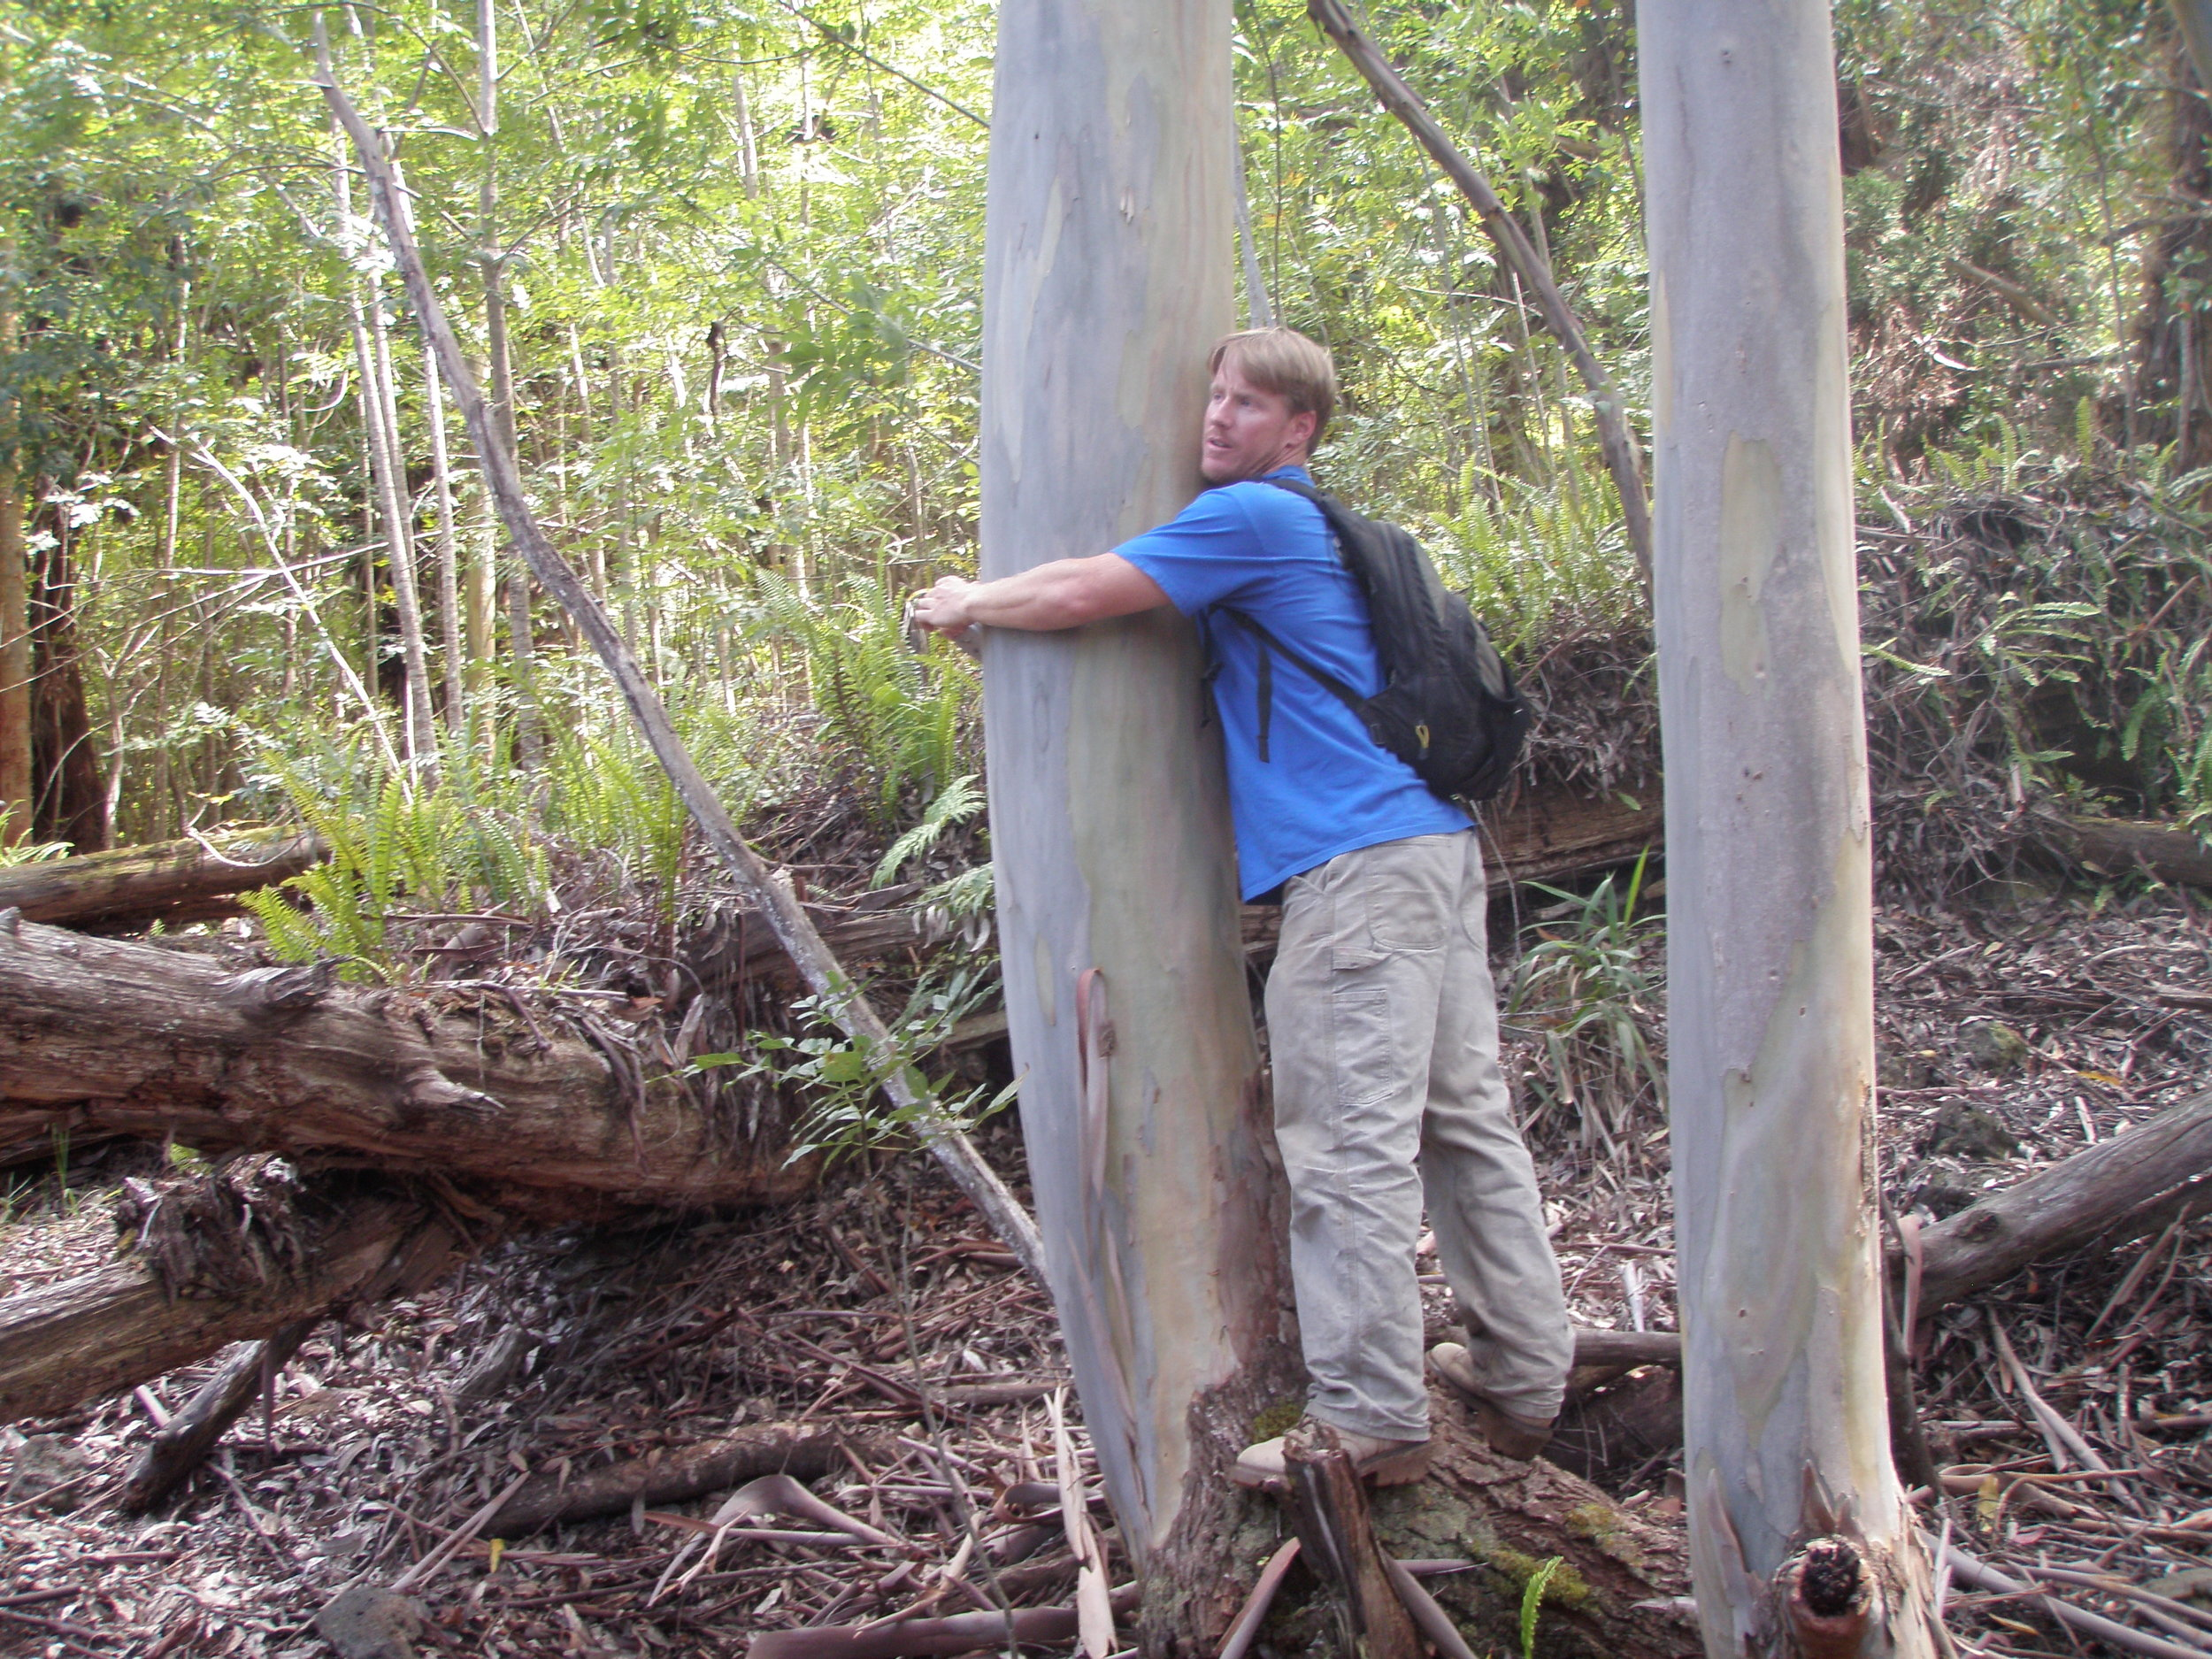 Hugging the trees: measuring the diameter of a eucaplytus. Photo: Willie Rice.